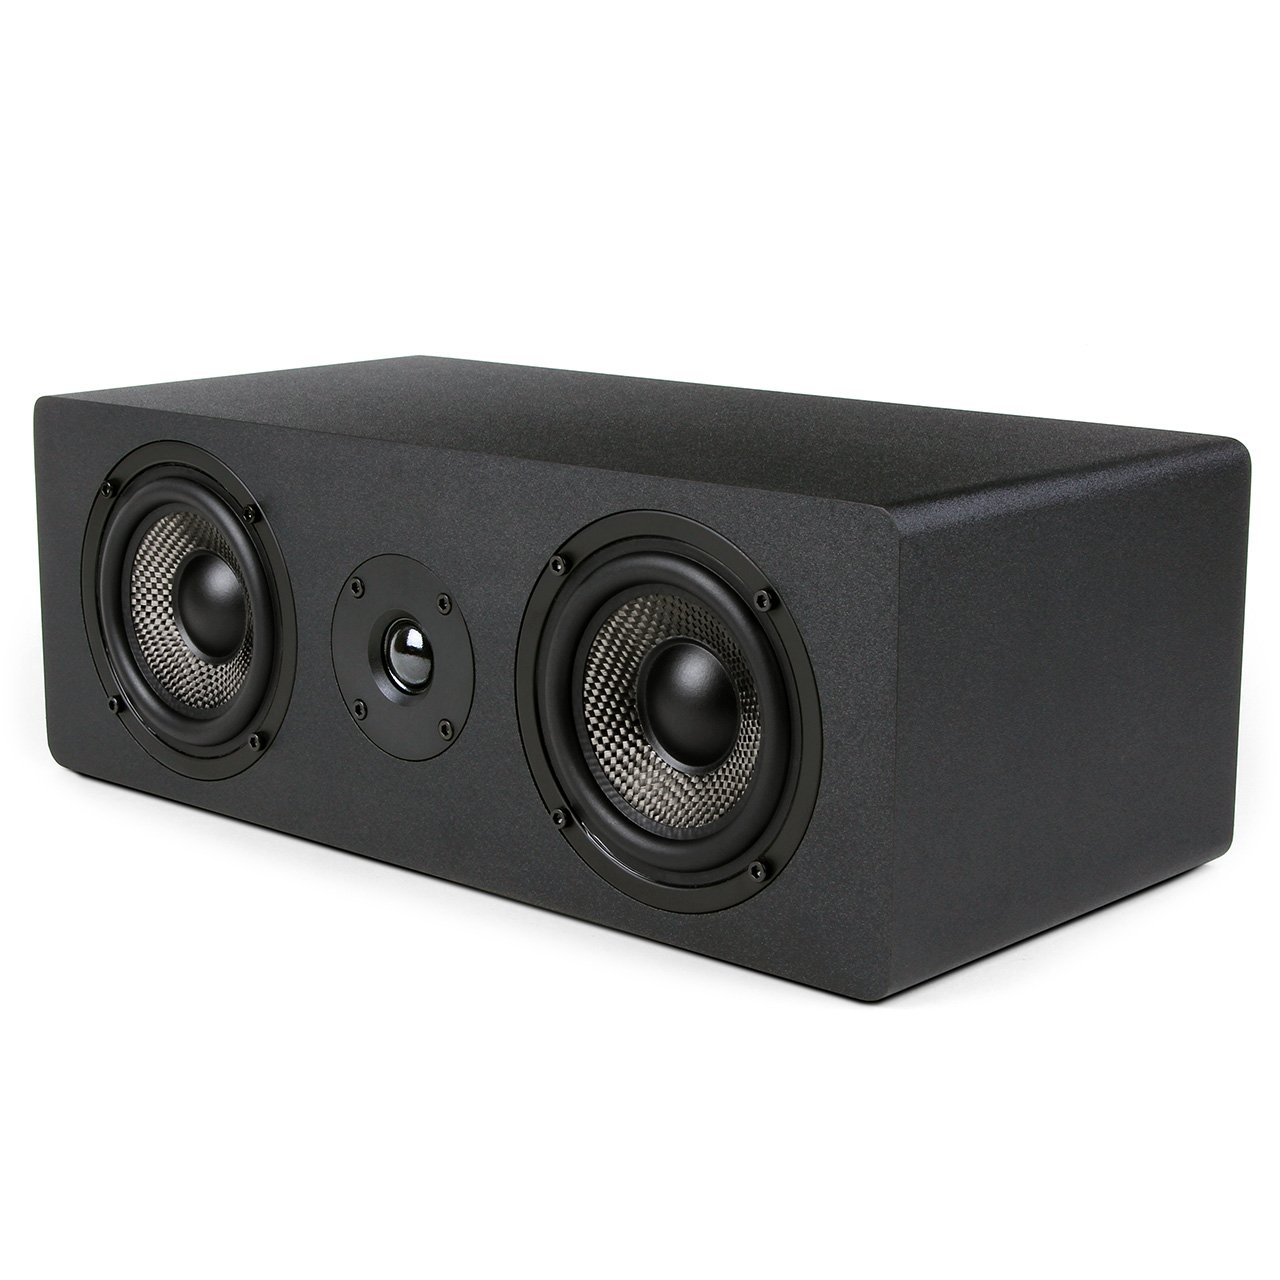 Micca MB42X-C Center Channel Speaker with Dual 4-Inch Carbon Fiber Woofer and Silk Dome Tweeter, Black Team Wise Holdings Limited